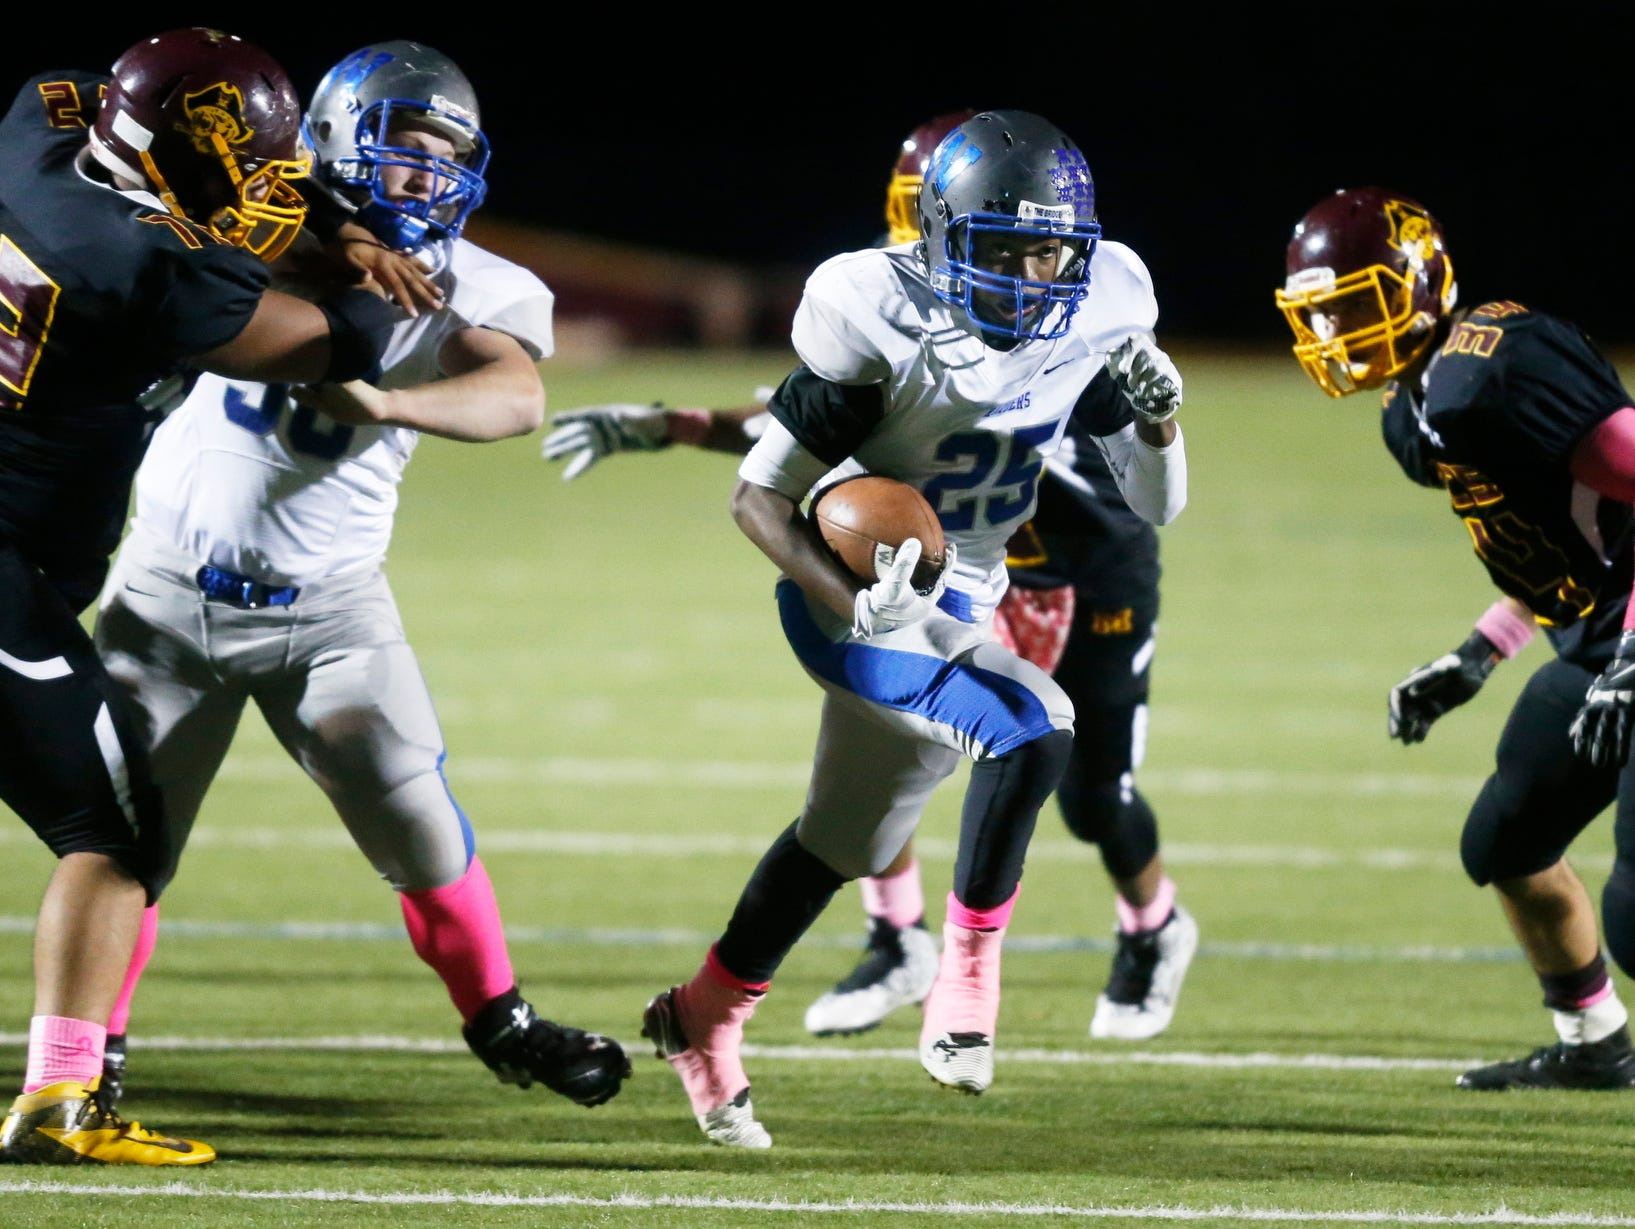 Woodbridge running back Kirby Williams gets through the line - helped by teammate Nikko Lucke (left) on his late 22-yard touchdown run for the go-ahead score in the fourth quarter of the Blue Raiders' 17-14 win at Milford High School.